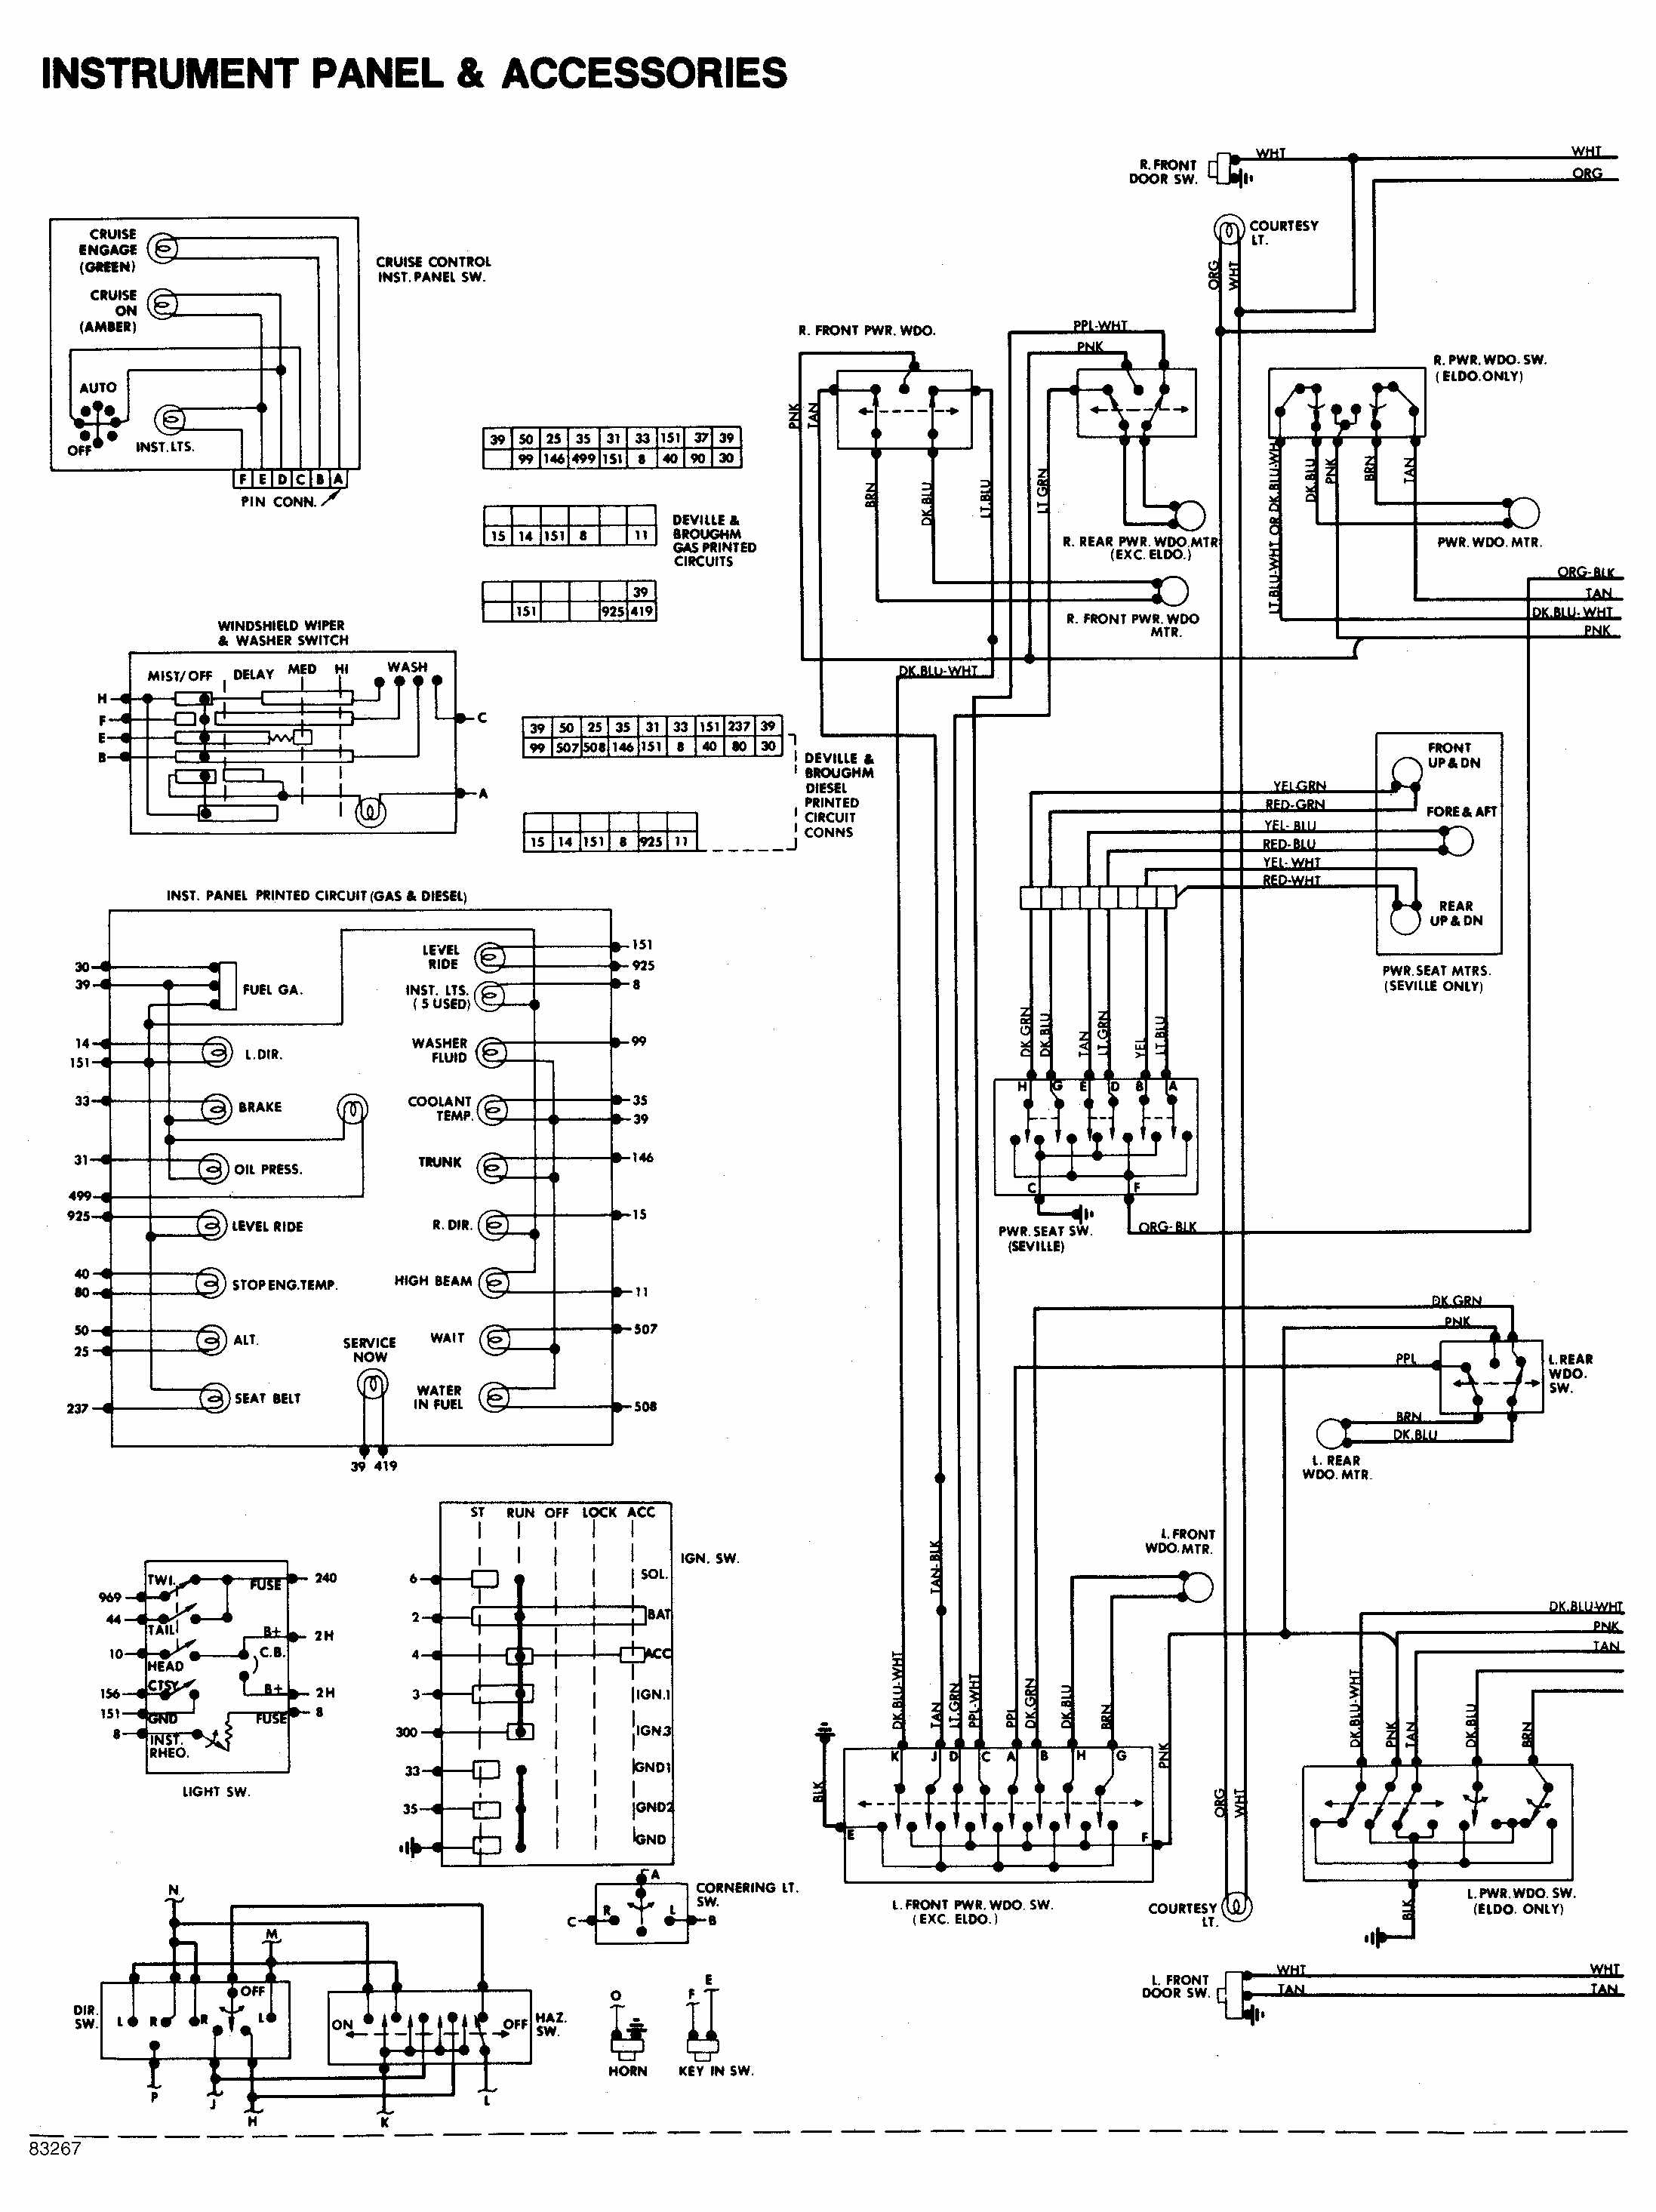 Complete Electrical Wiring Diagram 84 Chevy Nova Diagrams 1973 Pickup